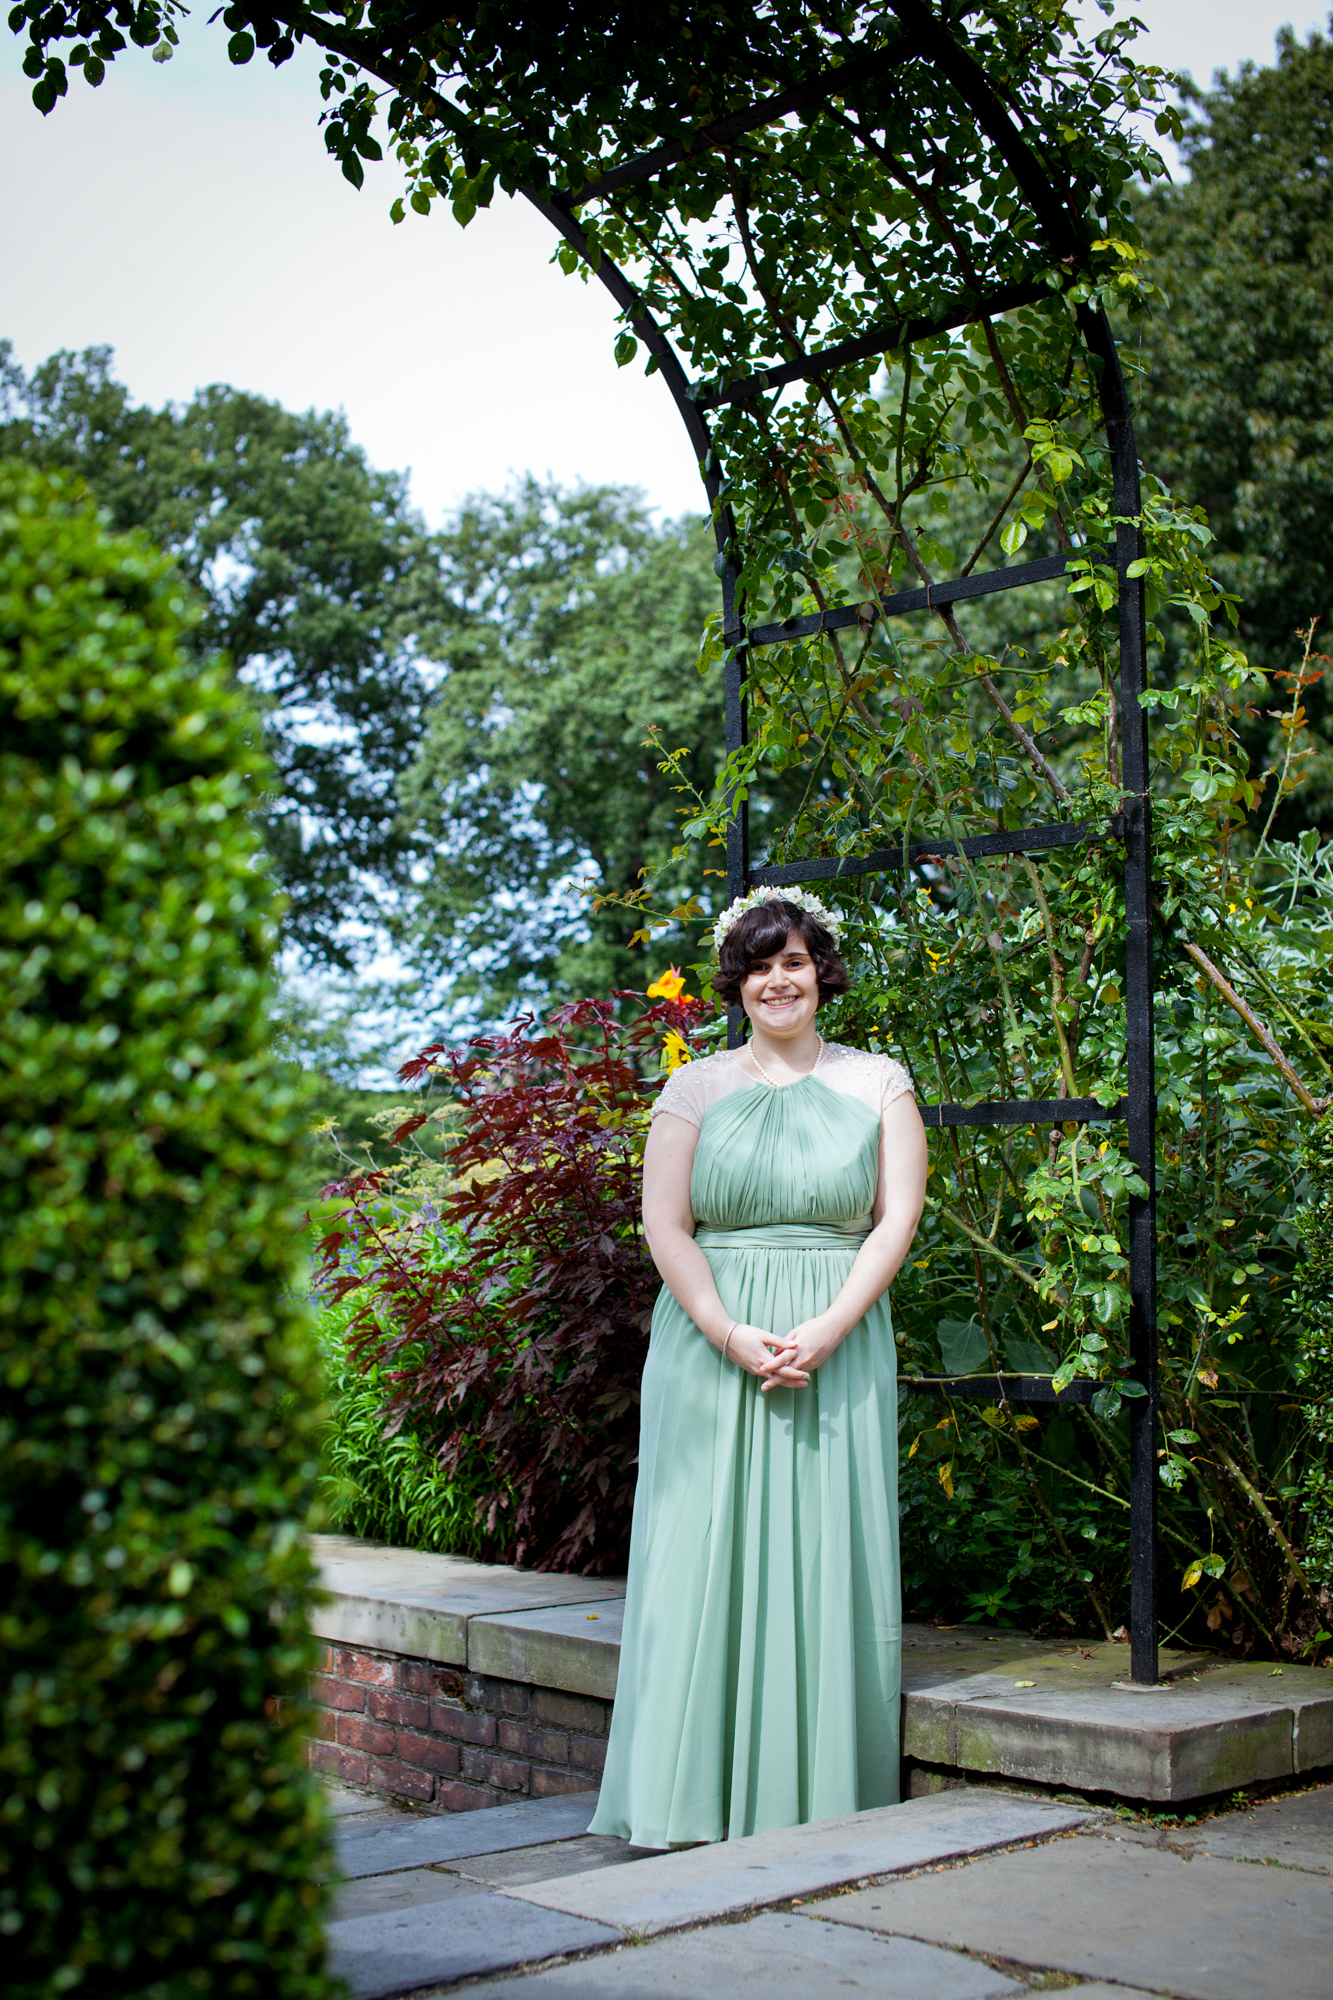 112_CarlyGaebe_SteadfastStudio_WeddingPhotography_NewYorkCity_CentralPark_ConservatoryGarden_ColorfulDress_Bouquet_Bride_Foliage.jpg